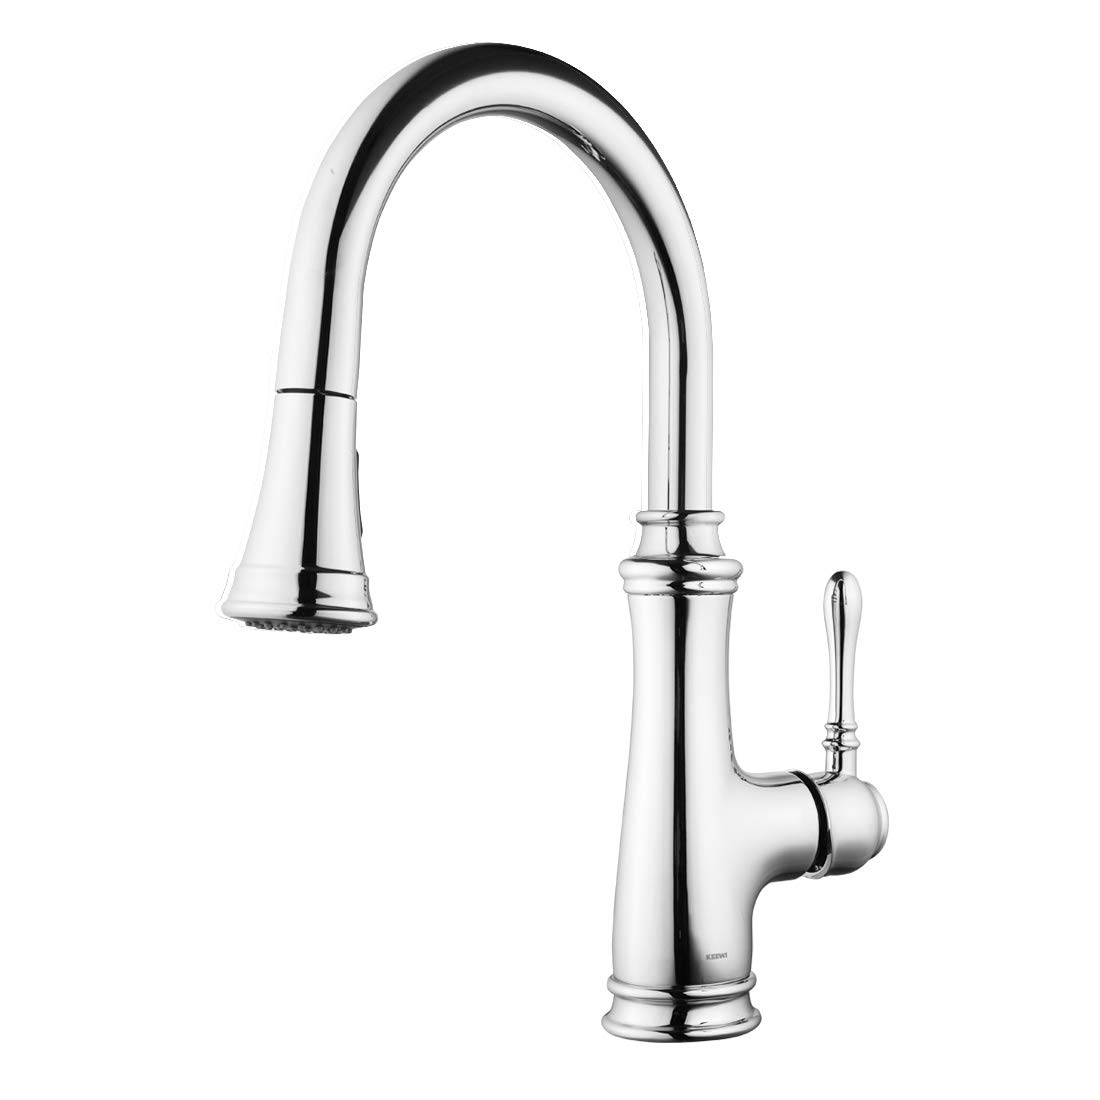 Keewi Kitchen Faucet Chrome Single Handle Pull Down Kitchen Faucet, Kitchen Sink Faucet, Single Hole Kitchen Faucet with Sprayer, Single Lever Kitchen Faucet Sink Faucet with Sprayer by Keewi